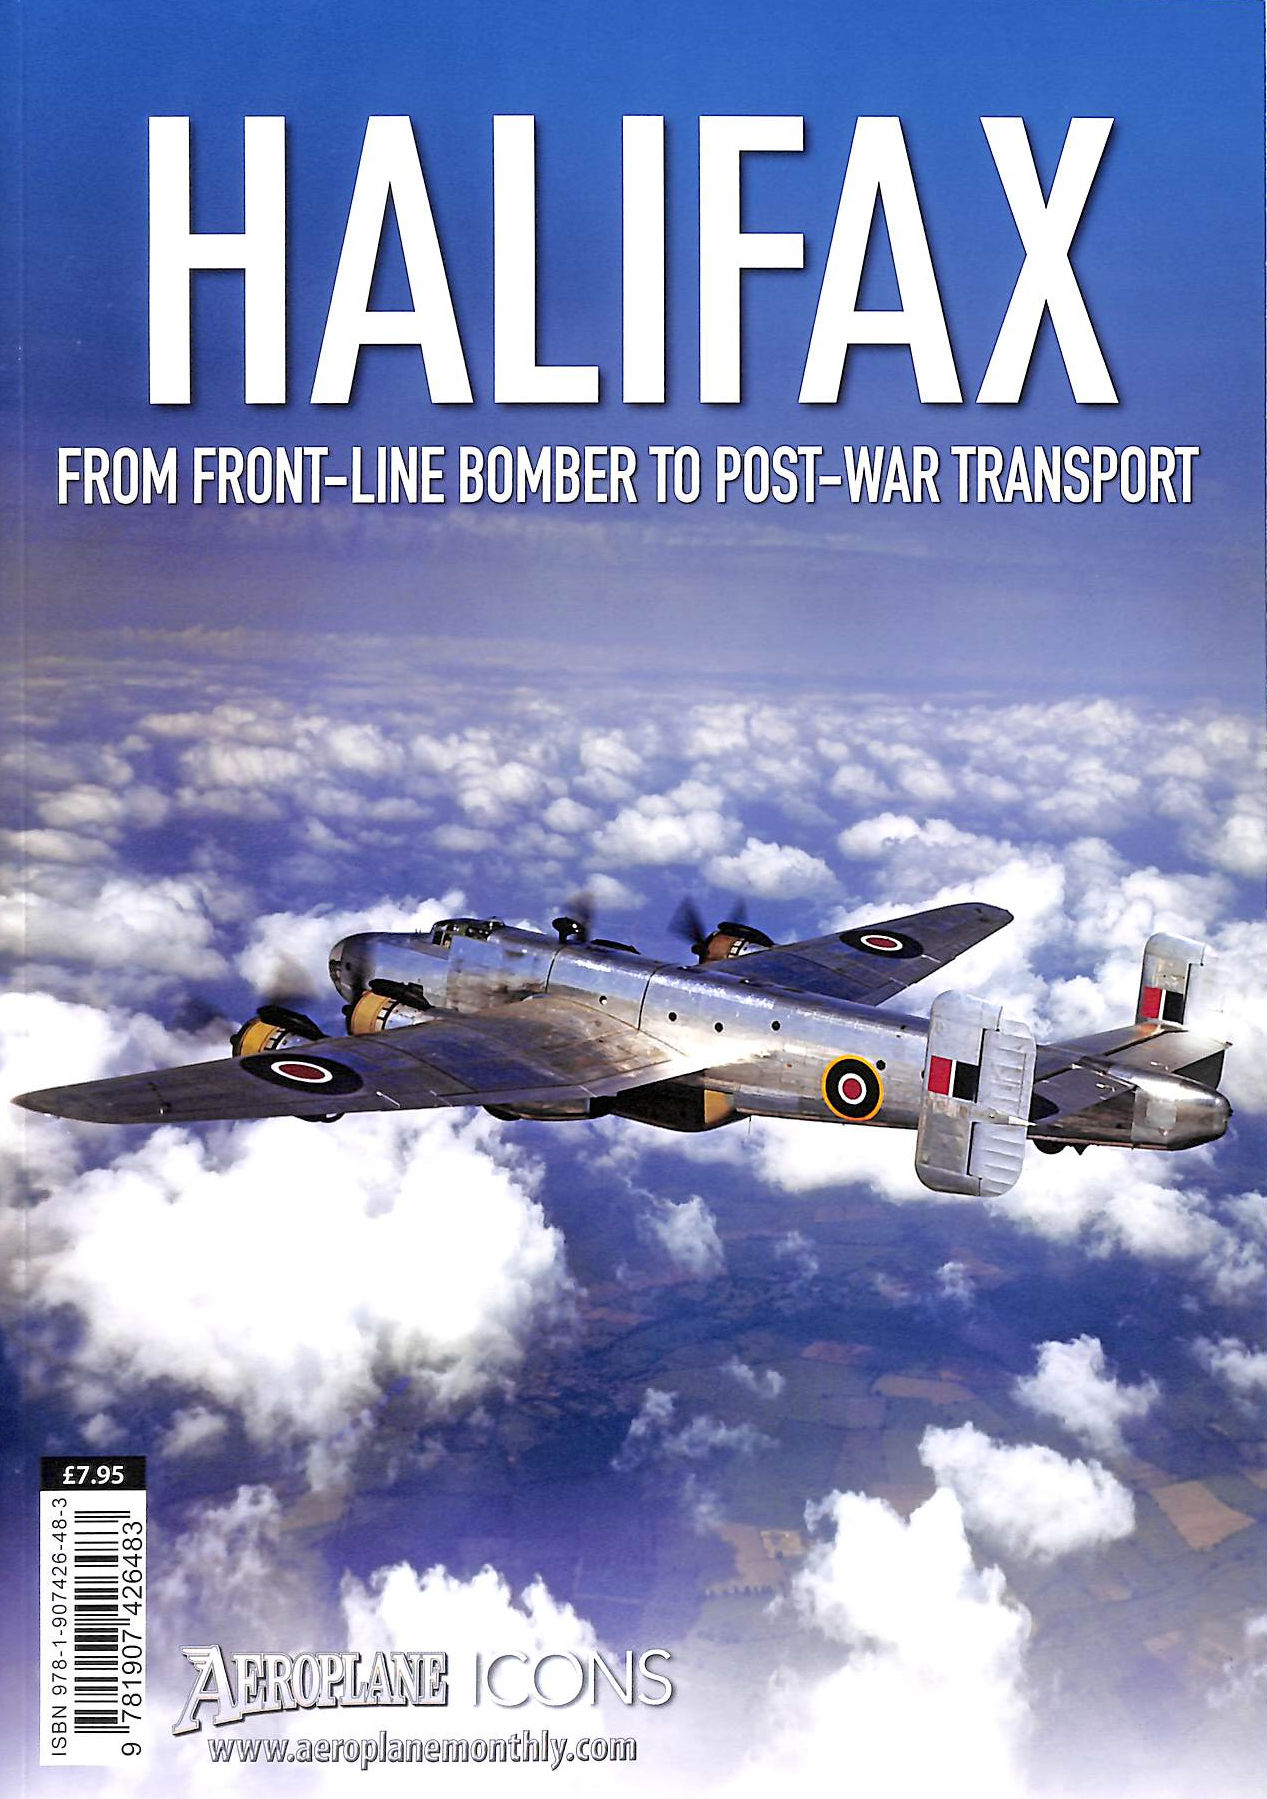 Image for Aeroplane Icons - Halifax